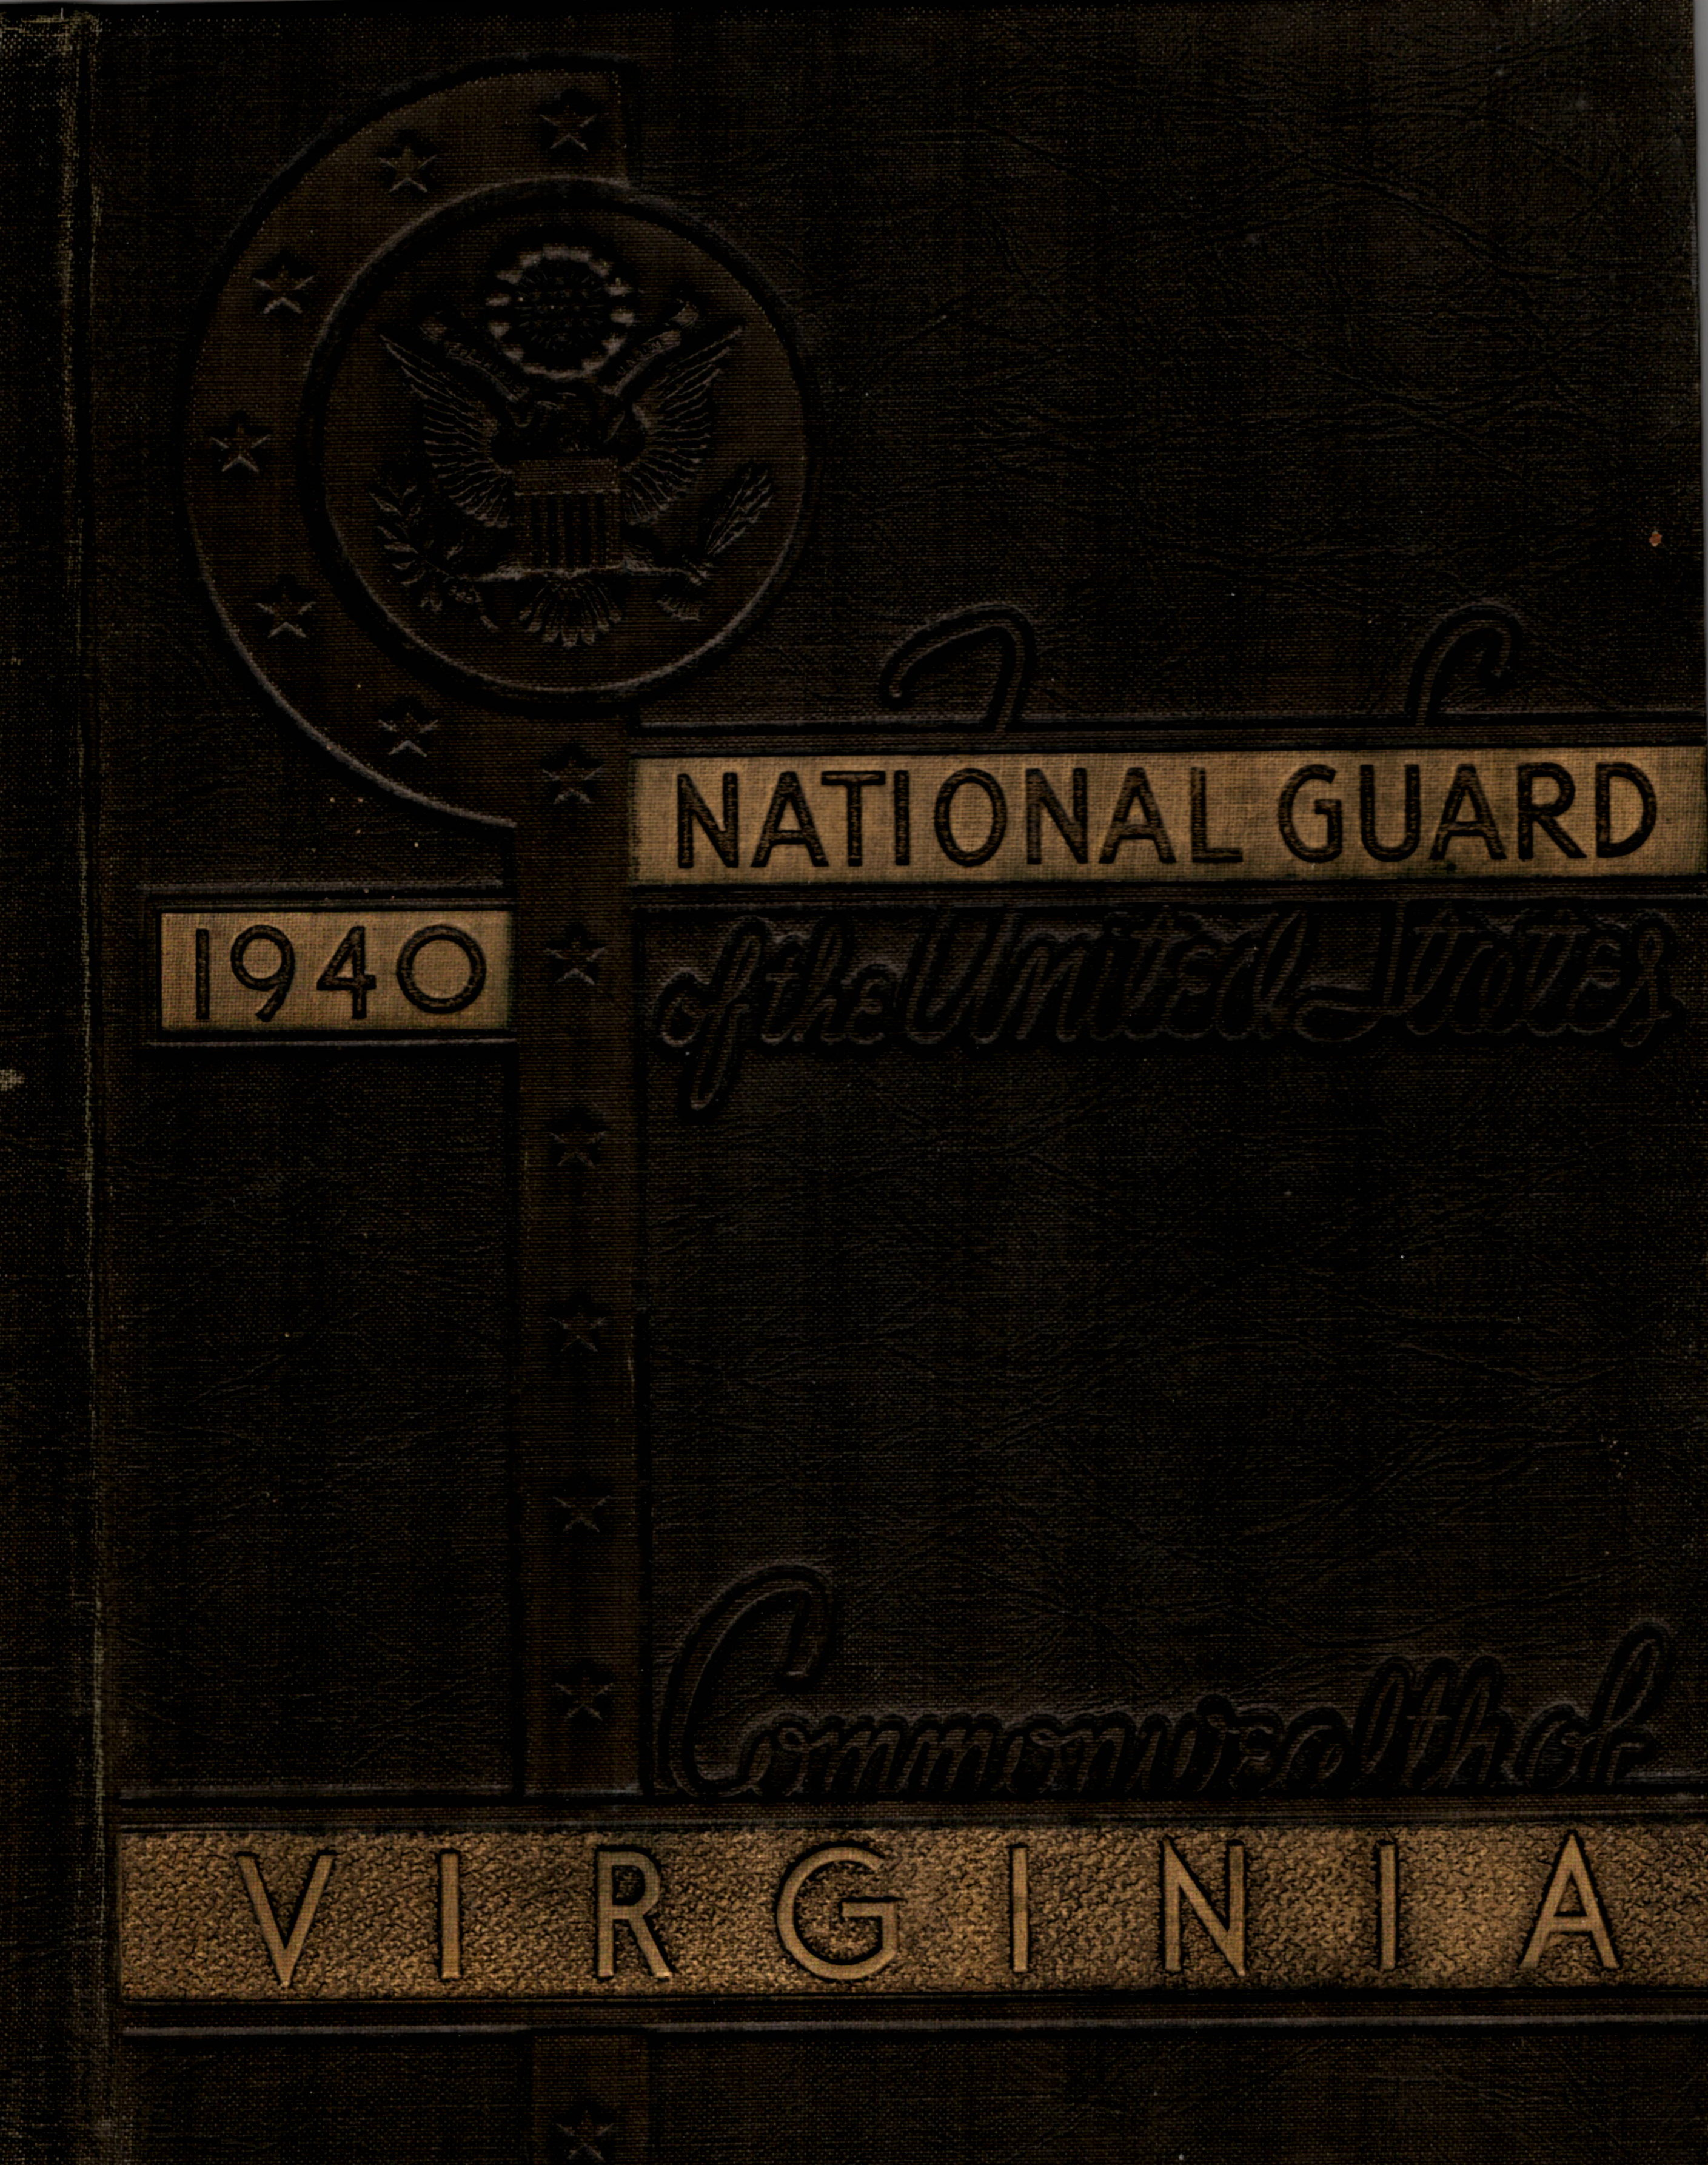 National Guard of the State of Virginia - 1940